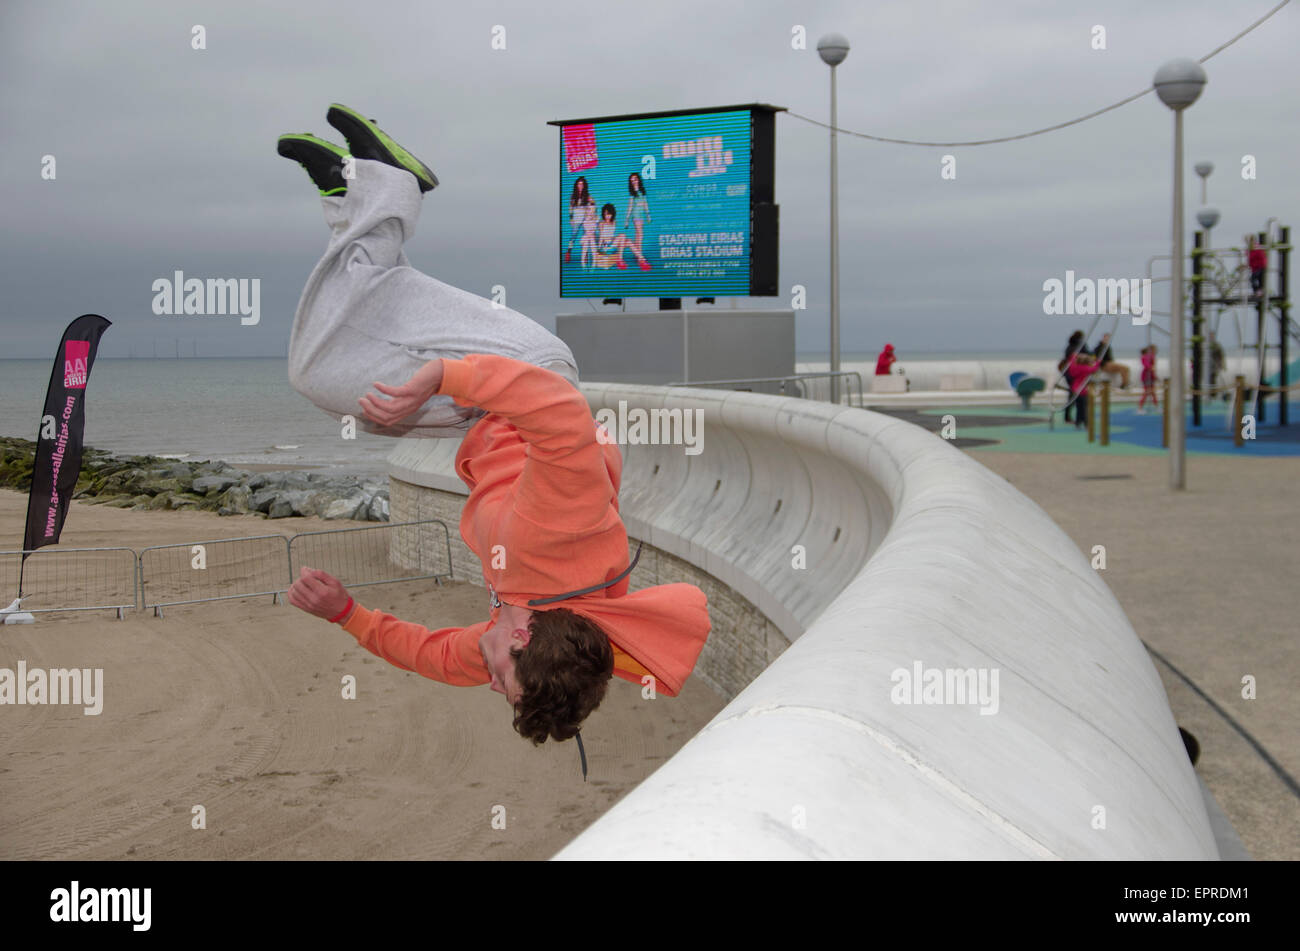 ree Runner, Eirias Watersports Centre, Colwyn Bay - Stock Image